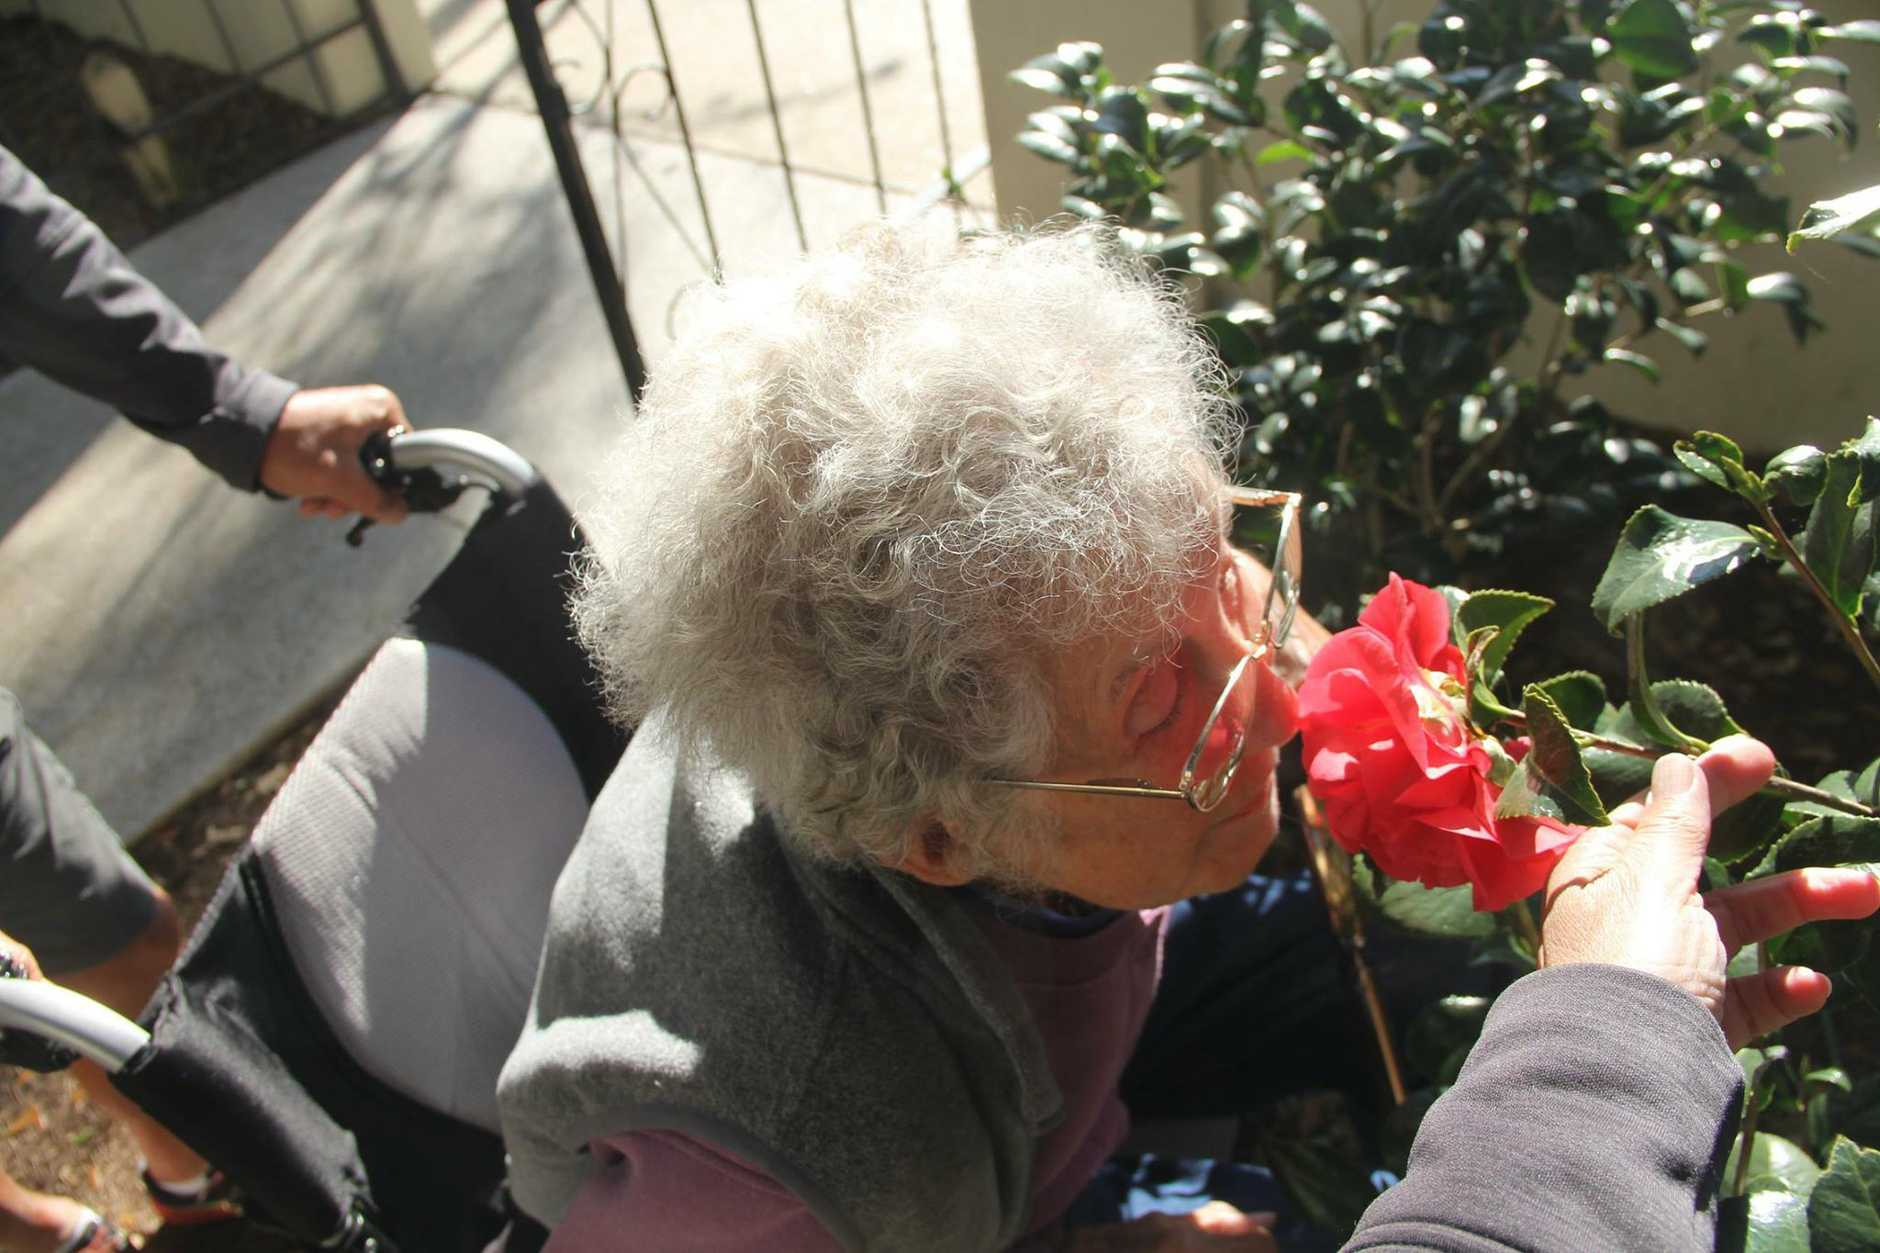 Norma taking time to smell the flowers.